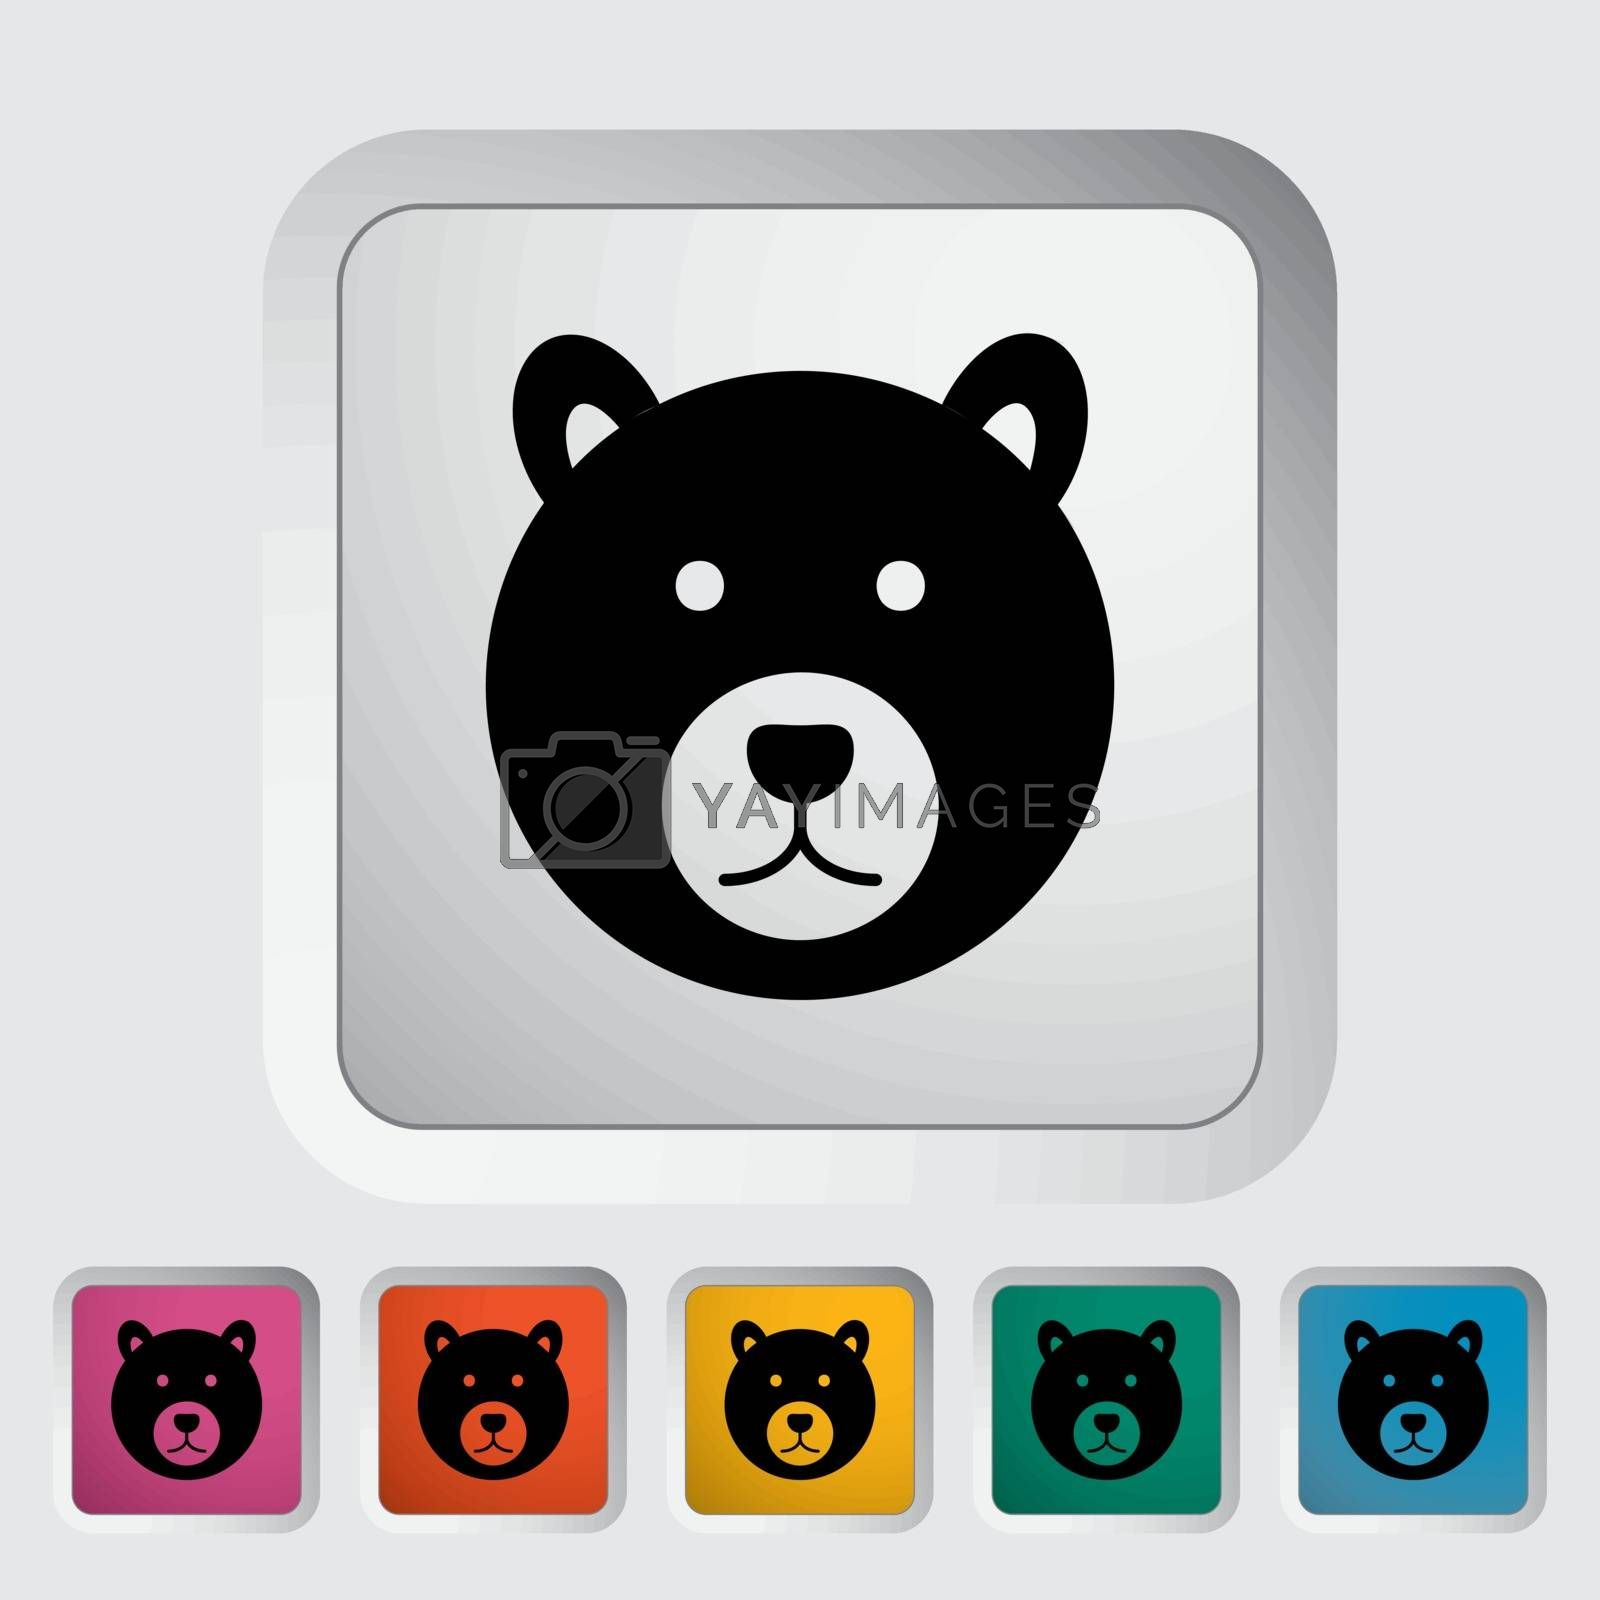 Bear icon by smoki